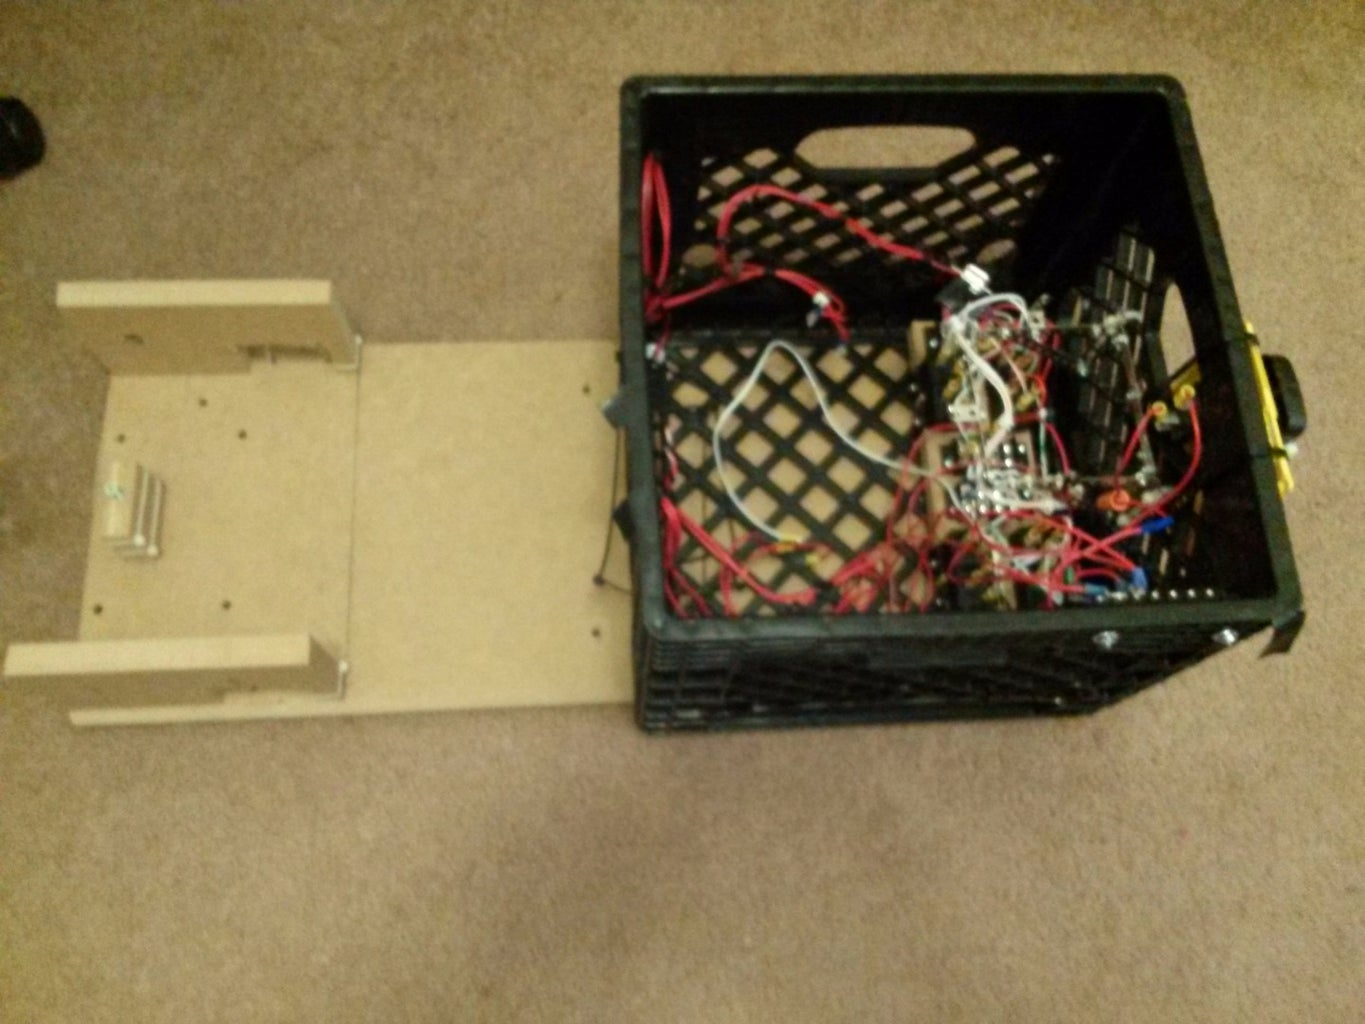 H Bridges and Crate Power Control Box Assembly